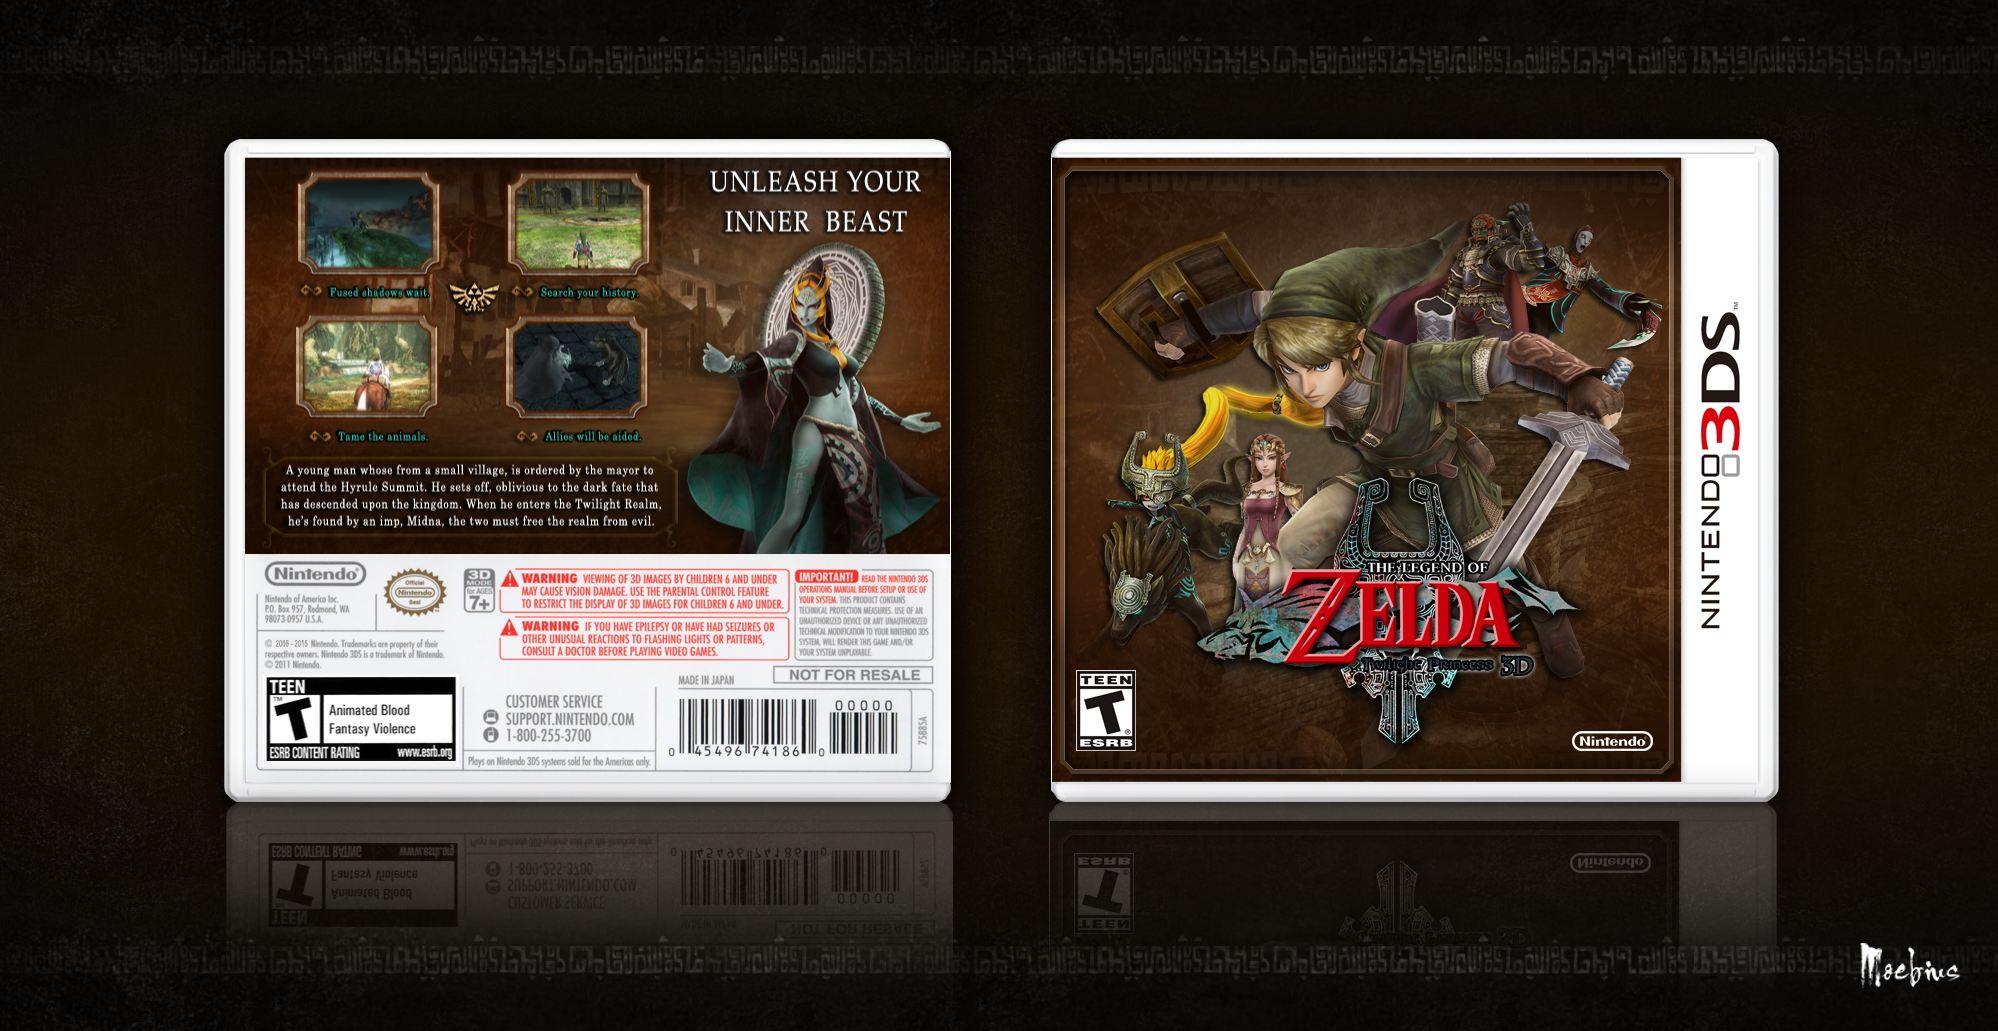 The Legend of Zelda: Twilight Princess 3D box cover